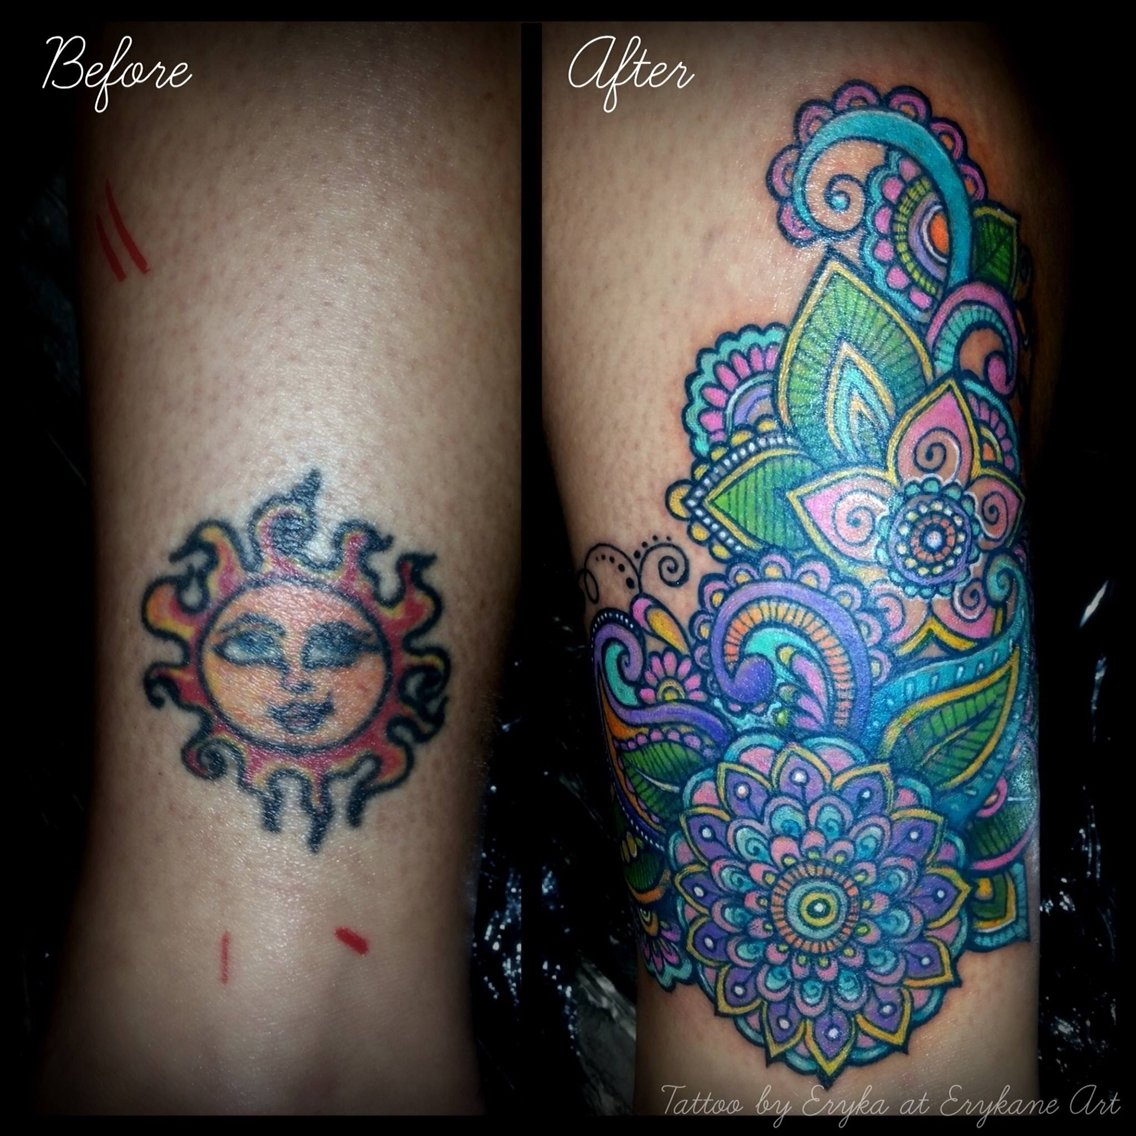 10 Unique Tattoo Cover Up Ideas For Work tattoo before after coverup love this the colors are beautiful 2020